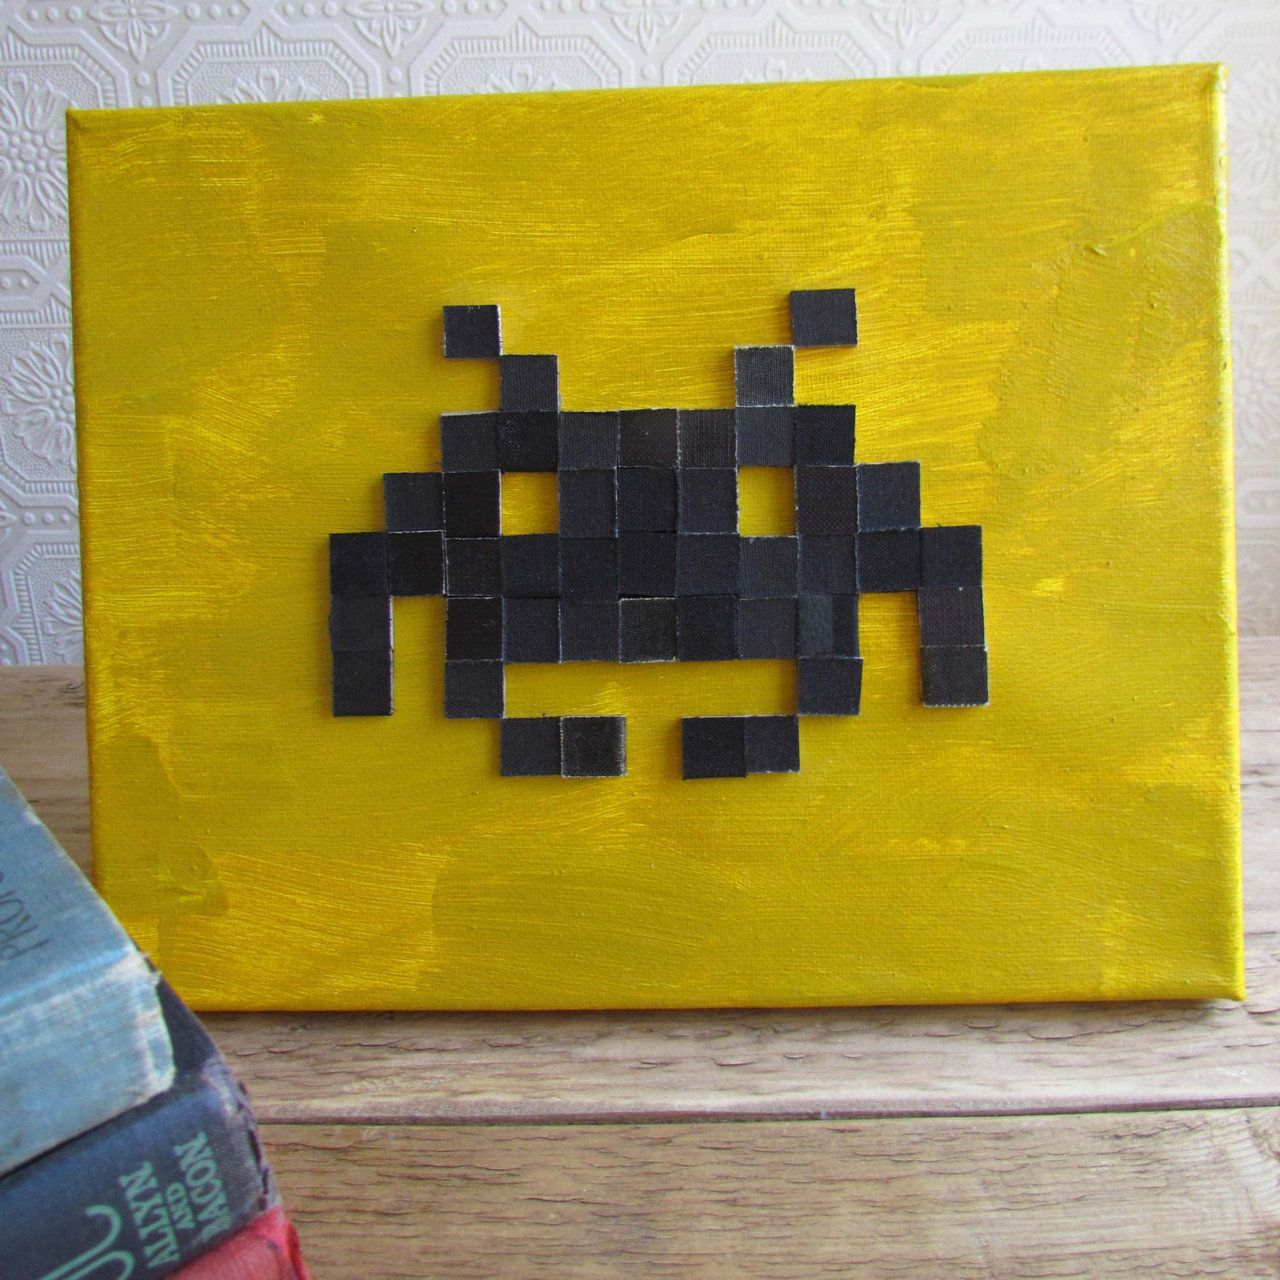 Recycled Book 8-bit Art by D+PAD | Video Game Home Decor | Pinterest ...